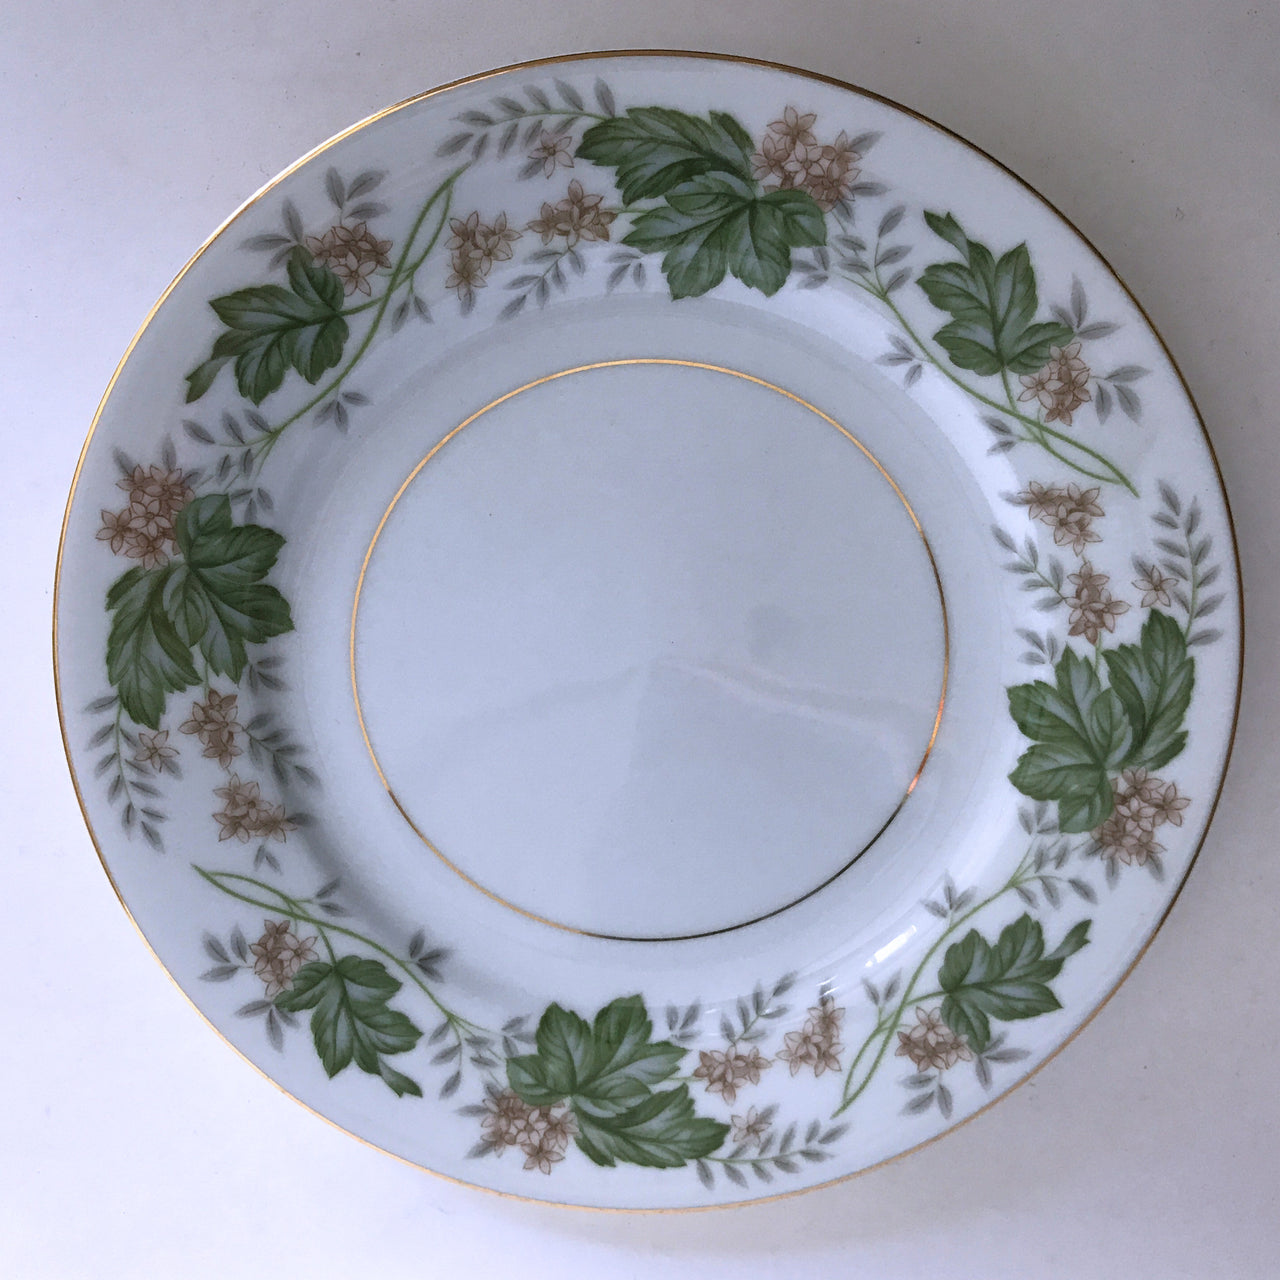 Vintage Noritake Daphne 5312 Salad Plate Tan Flowers Green Silver Leaves Gold